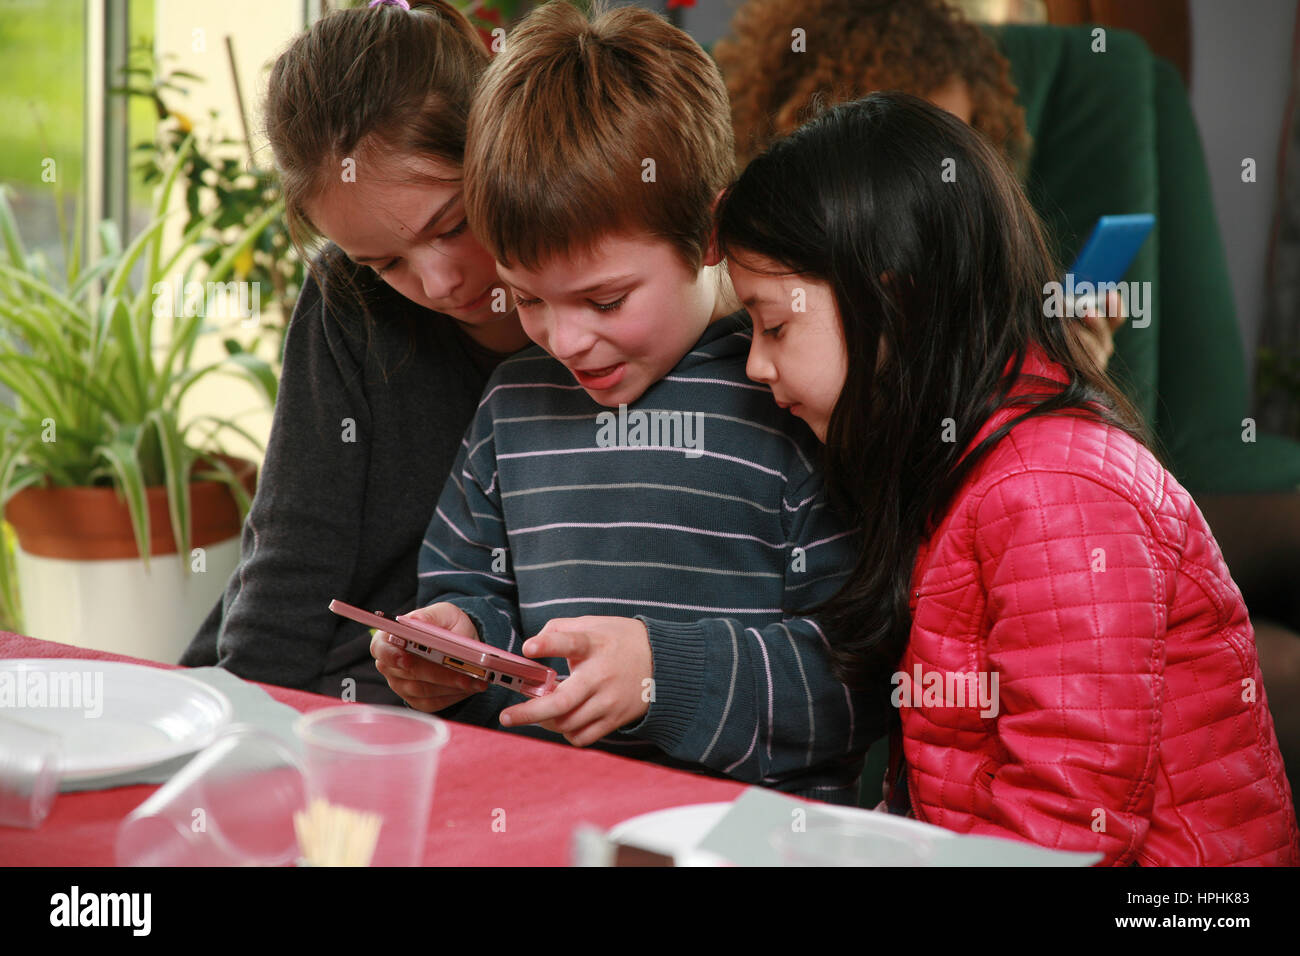 Kids playing on a game console - Stock Image